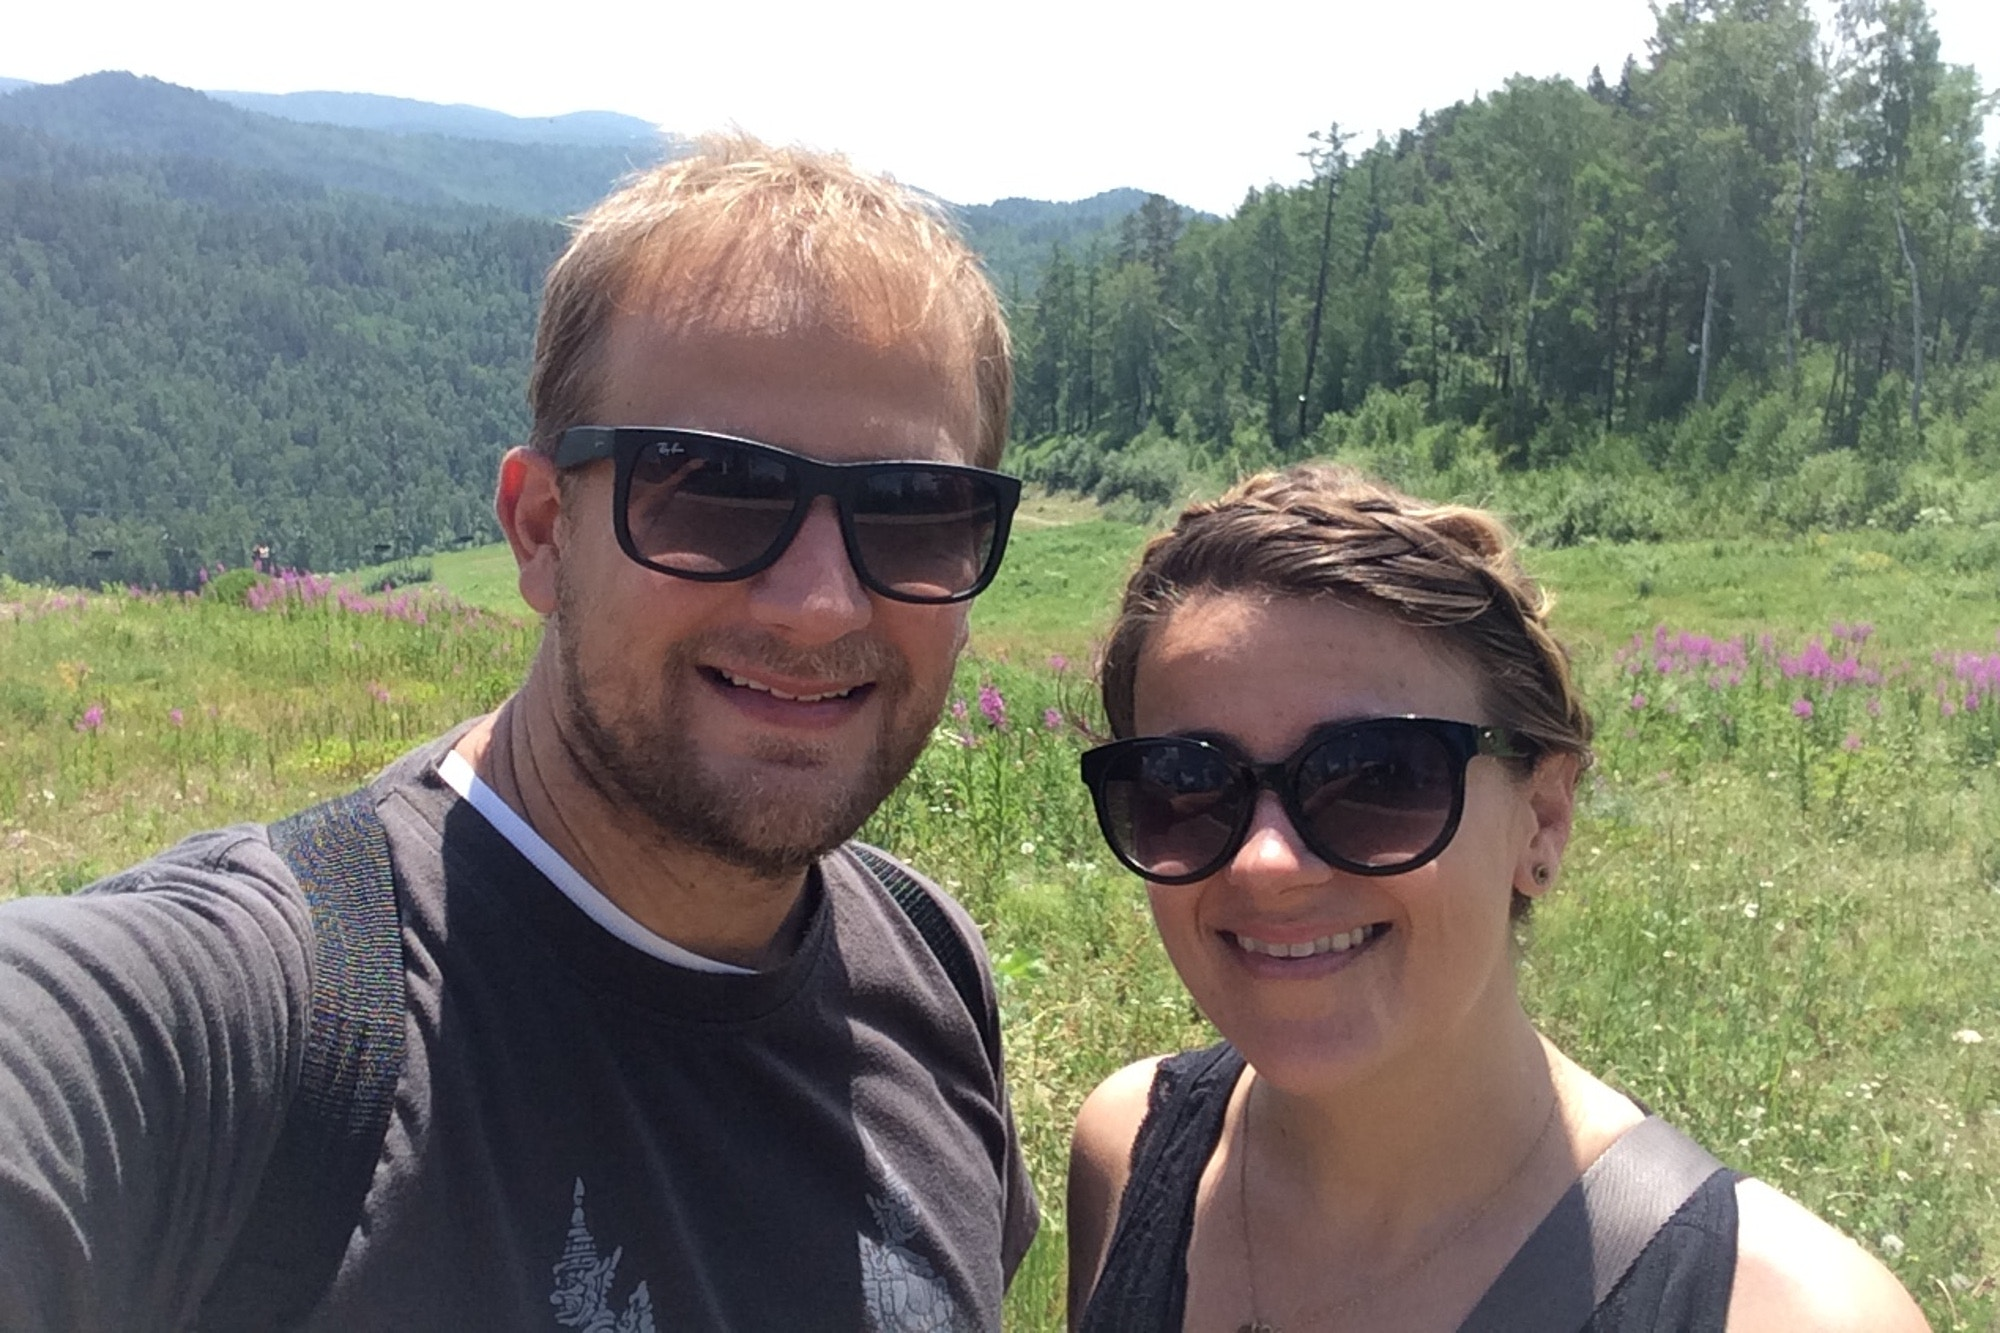 Trisha and her brother taking a selfie in front of a rural vista